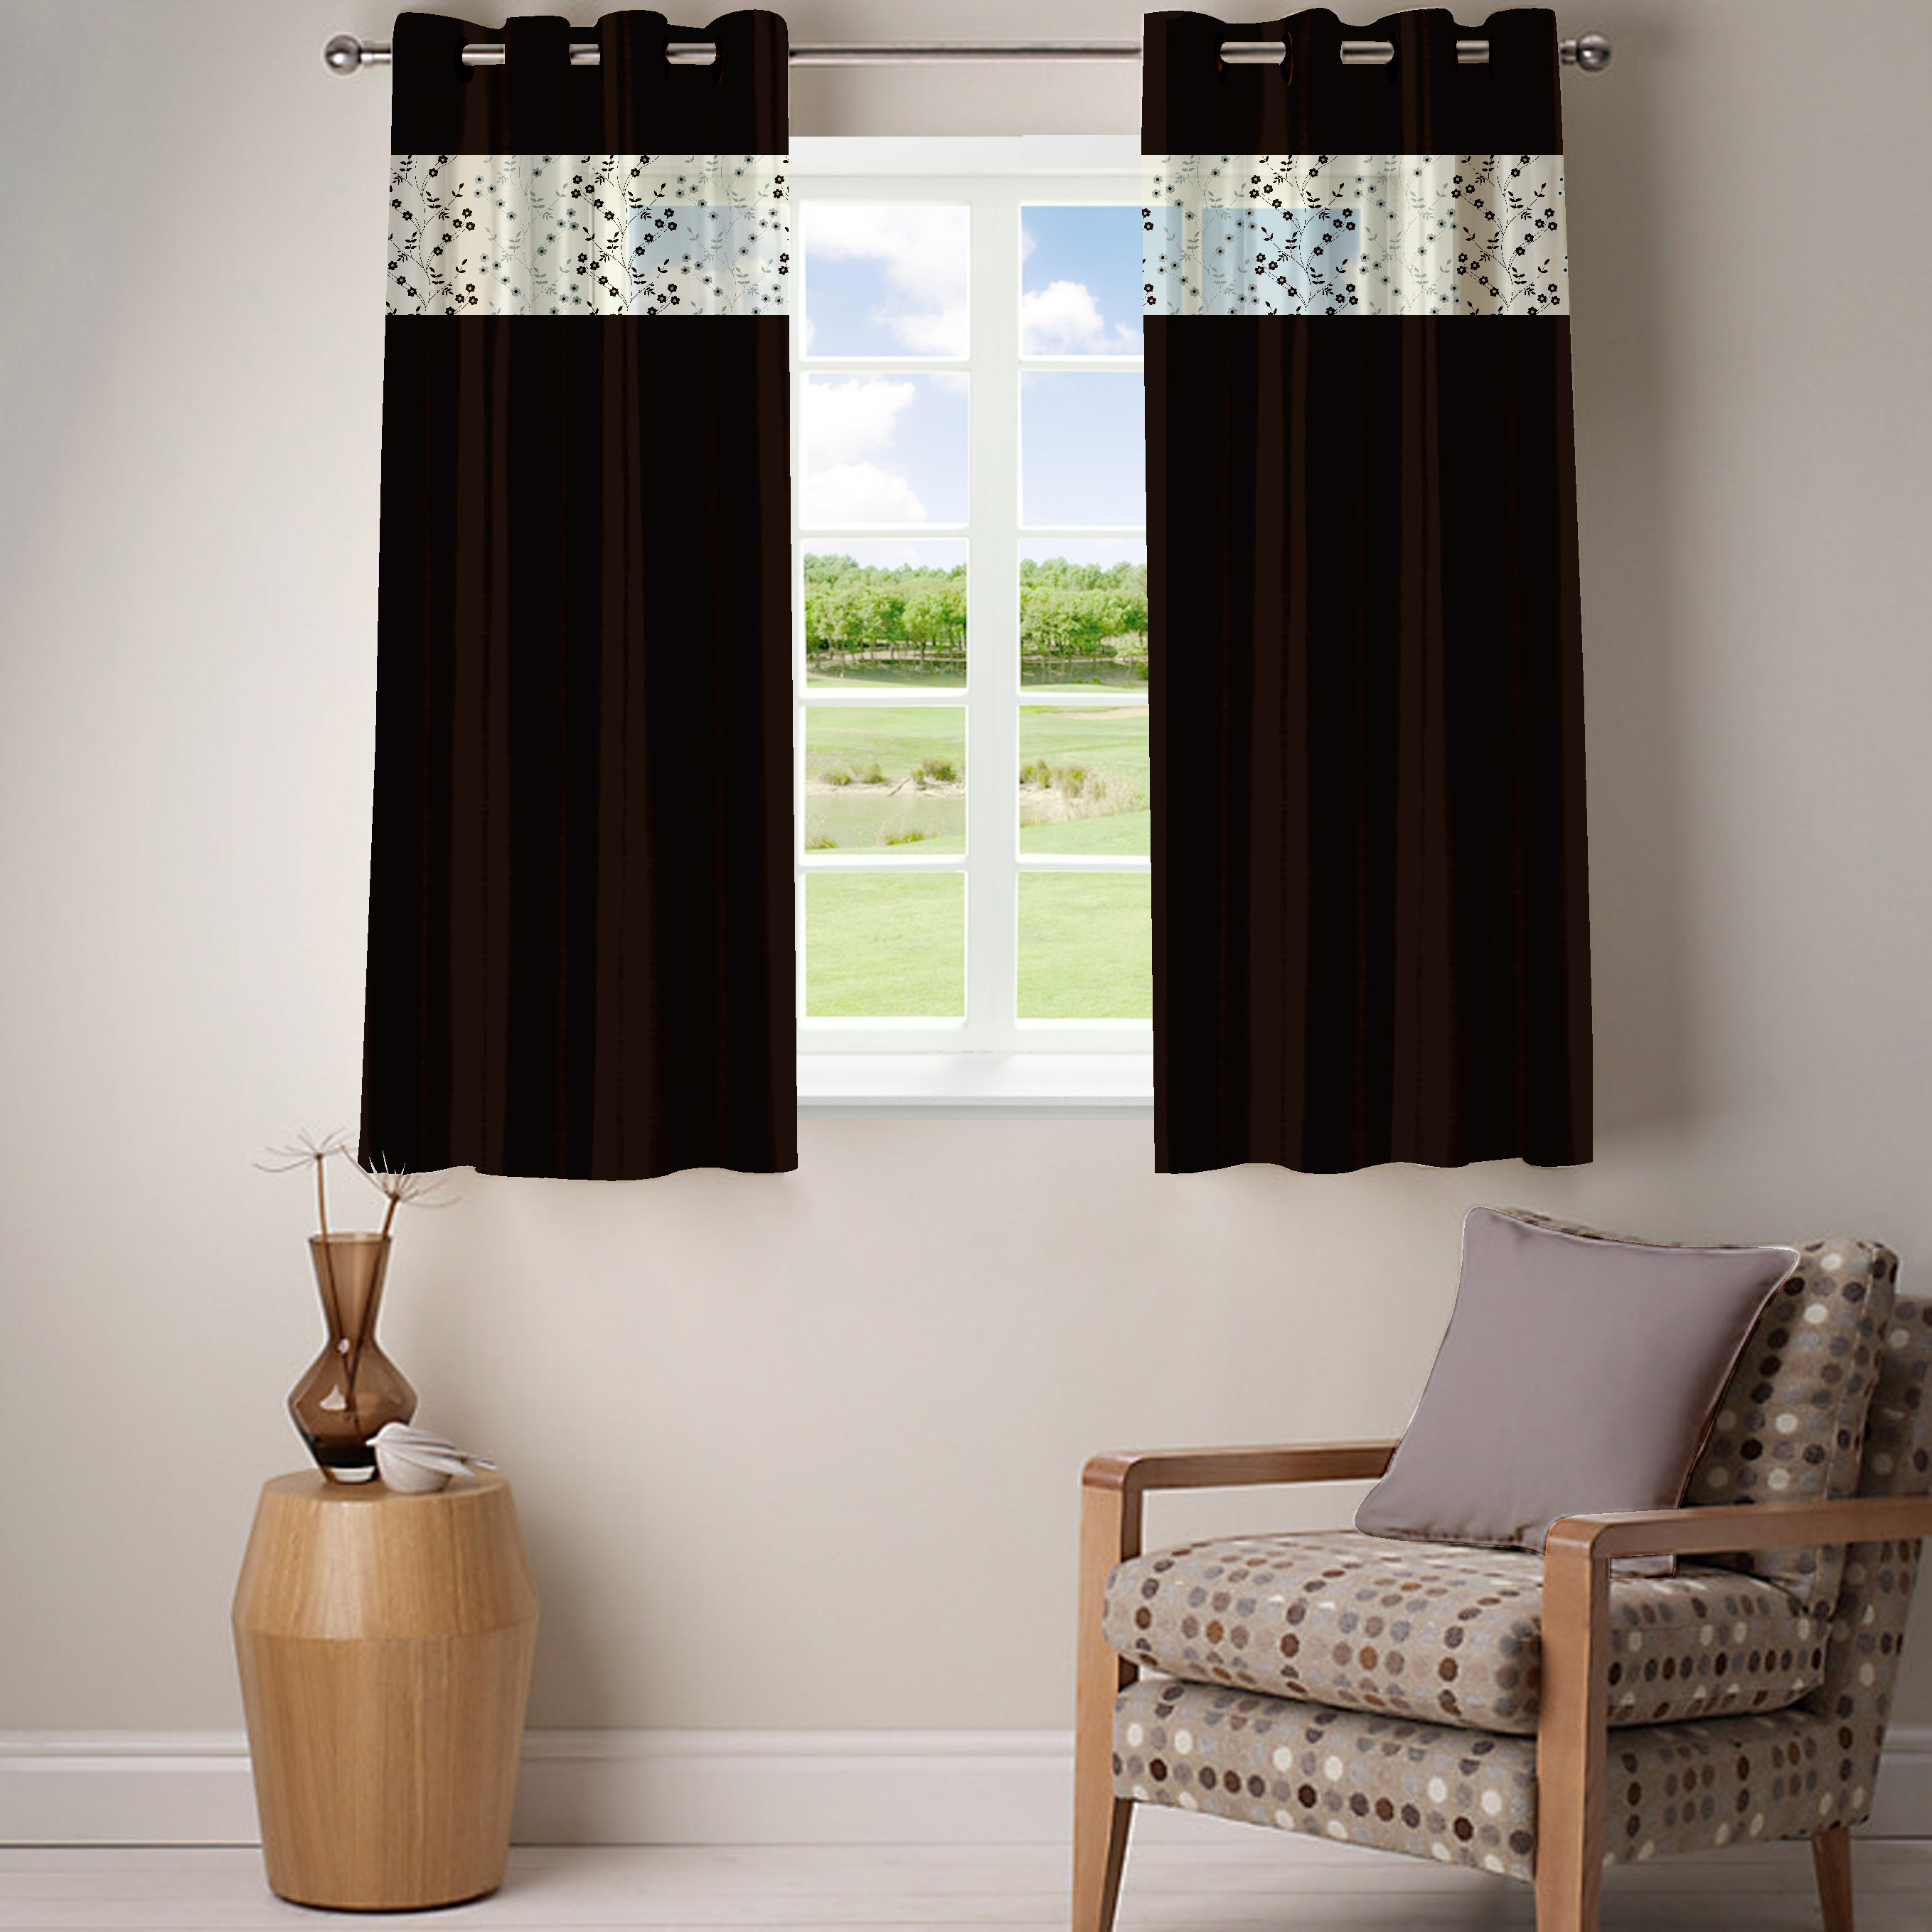 Kings Polycotton Brown Solid Eyelet Window Curtain class=